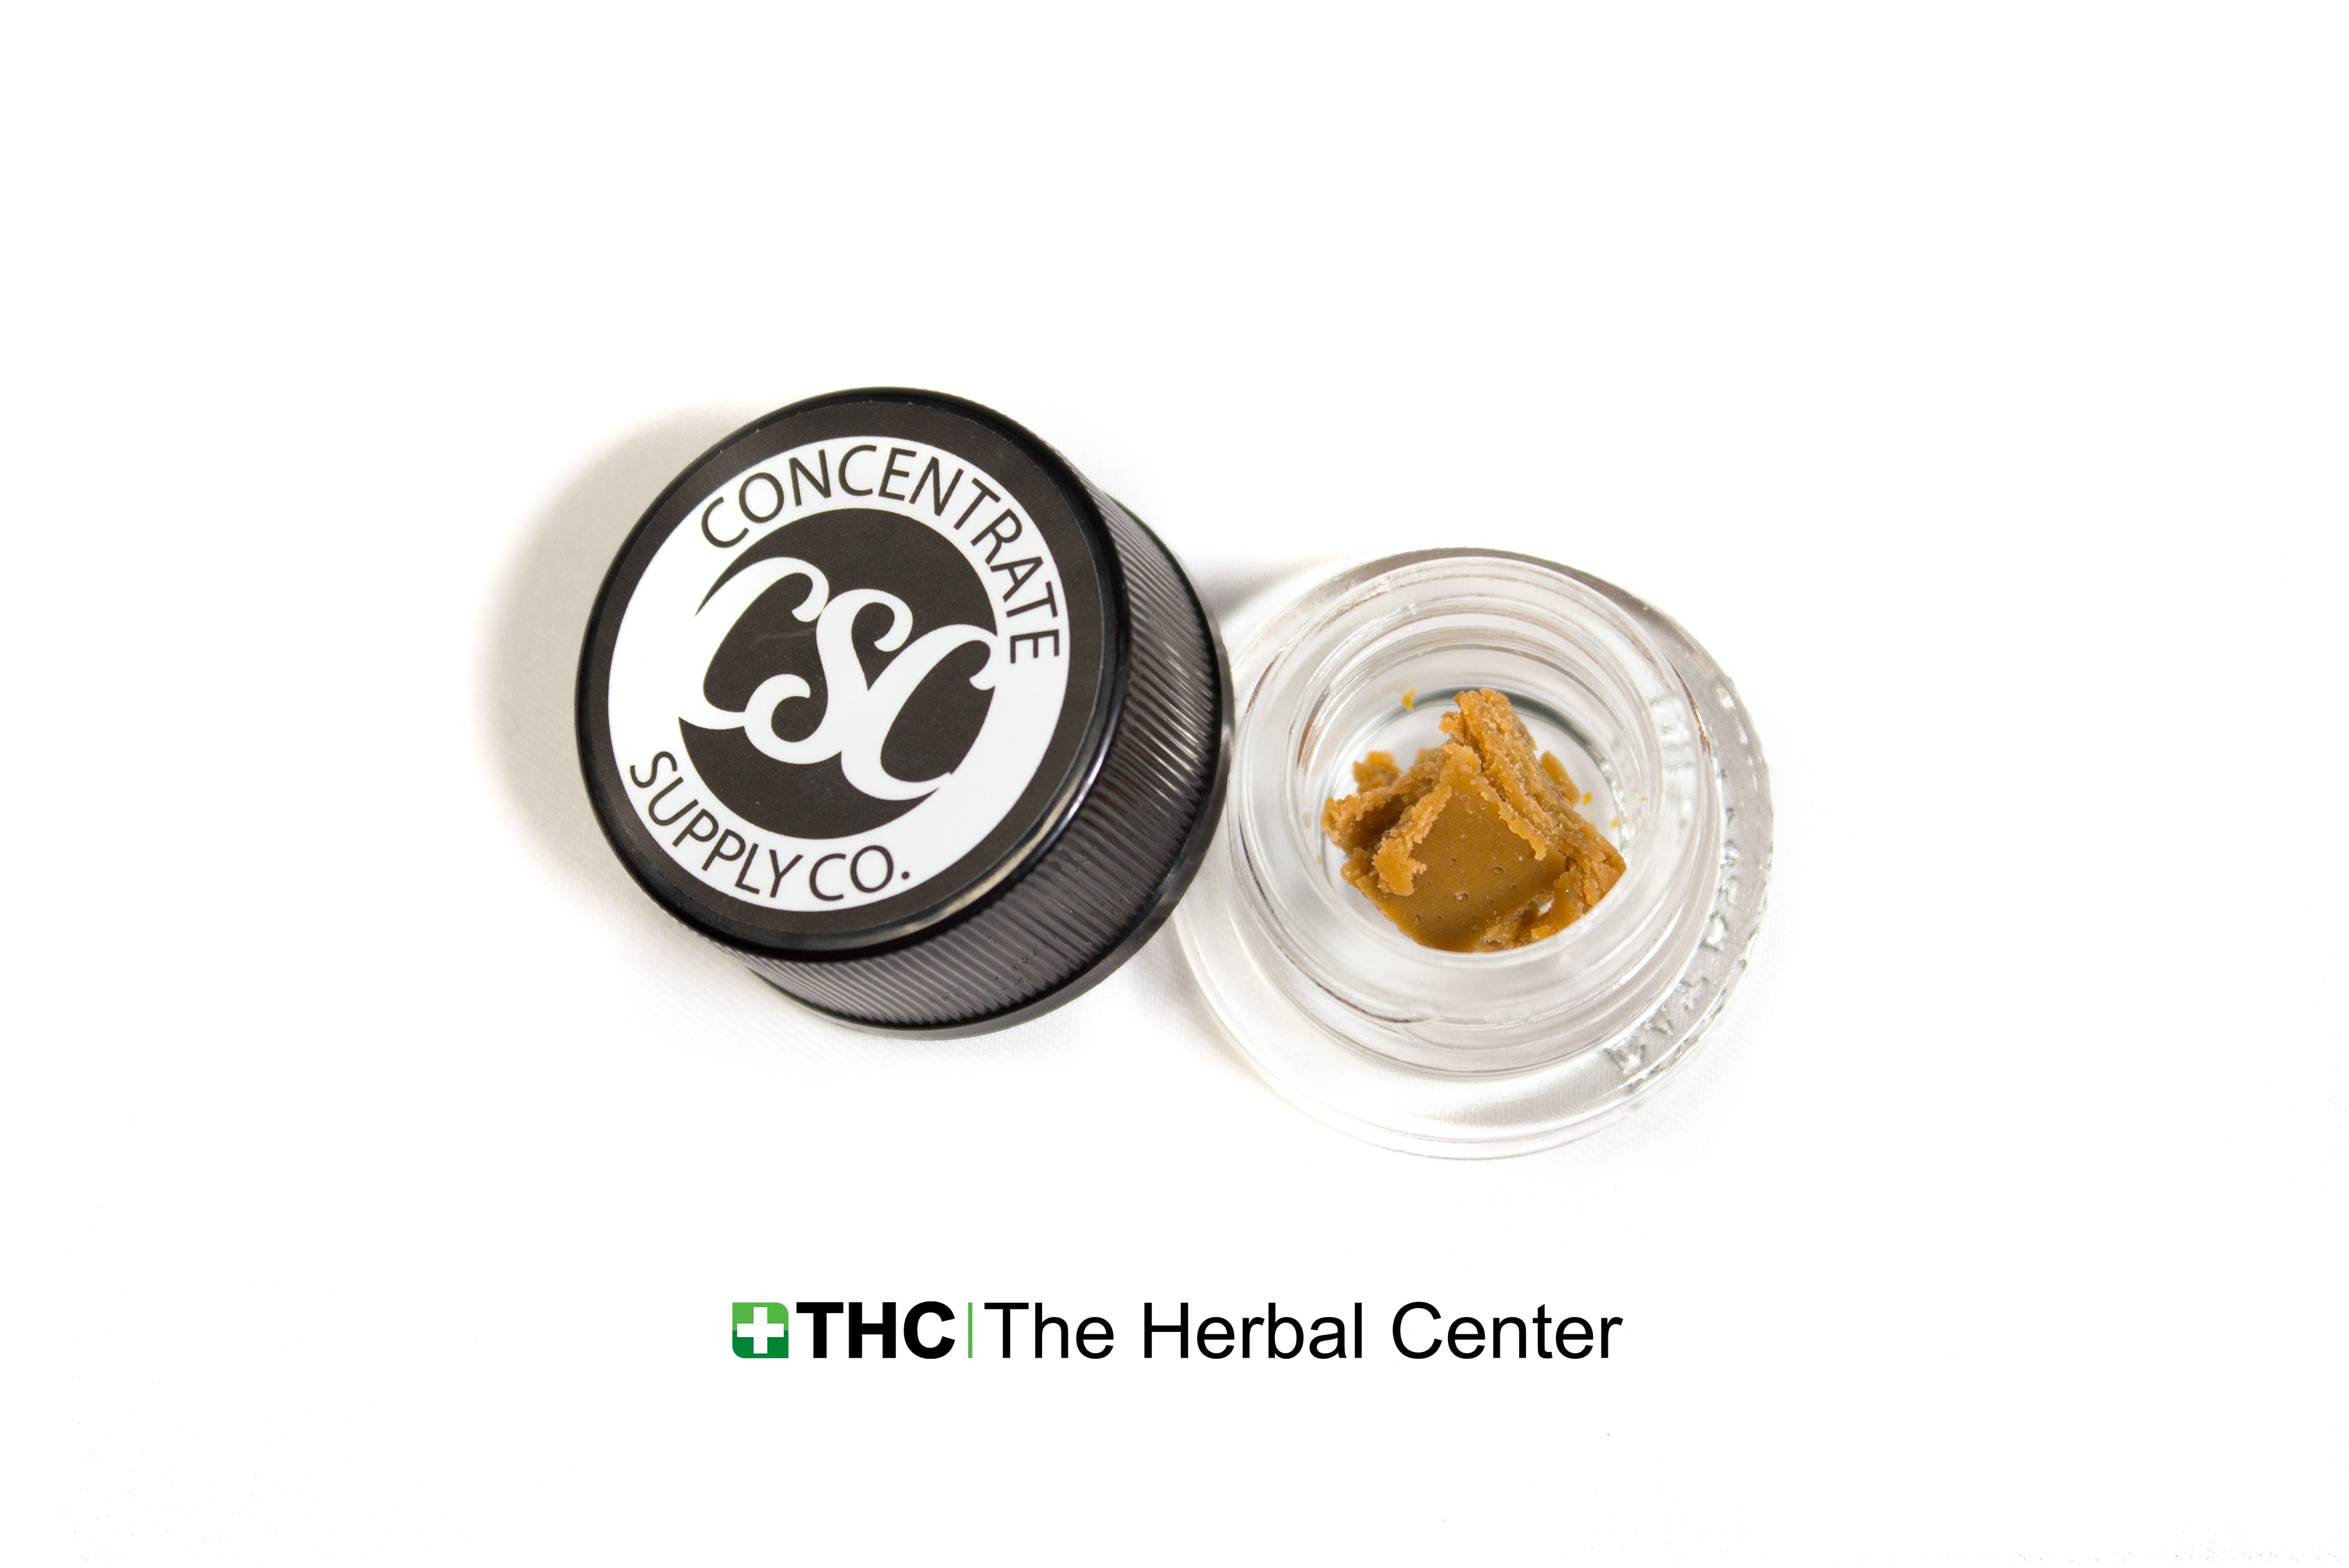 concentrate-csc-wax-danky-kong